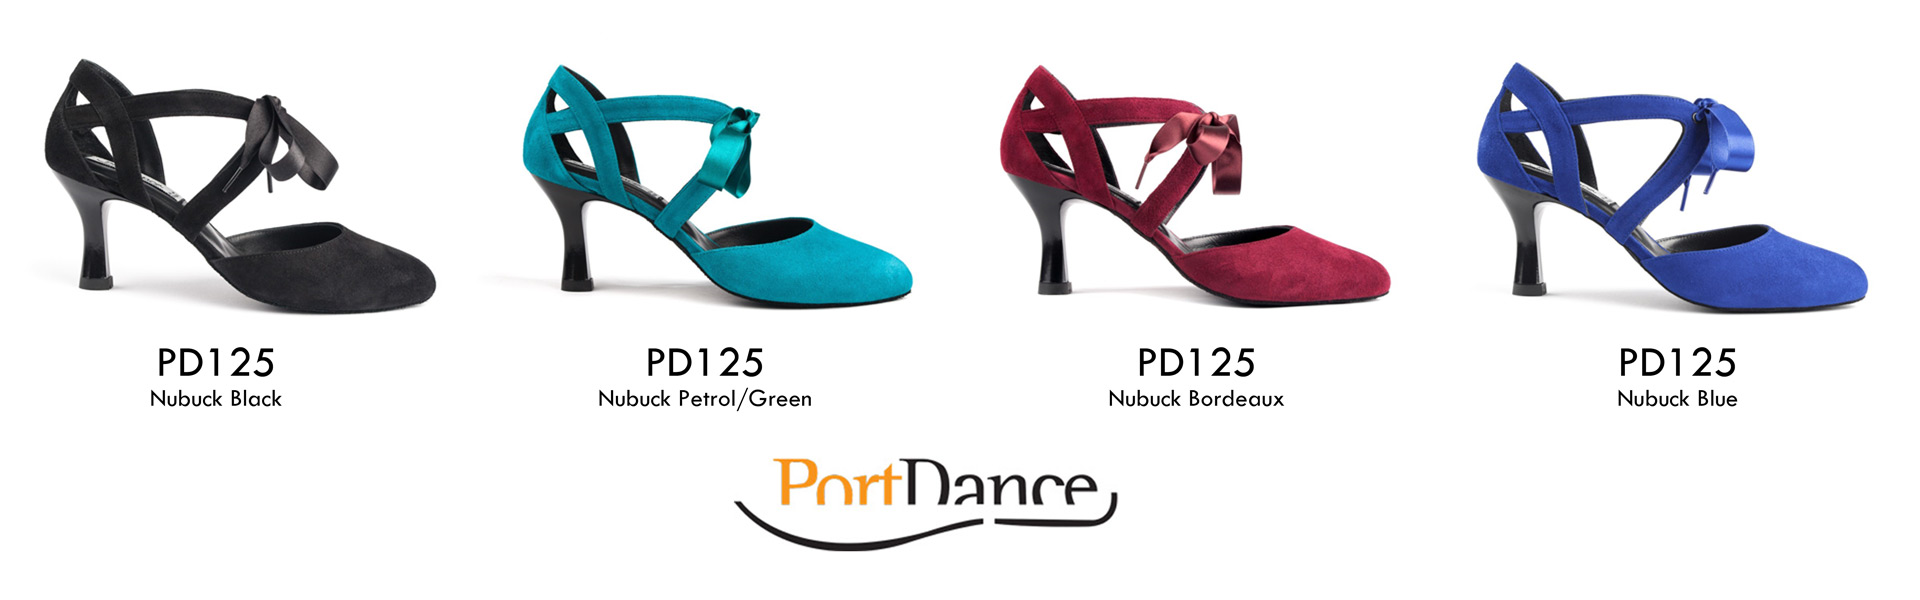 Portdance PD125 Dance Shoes